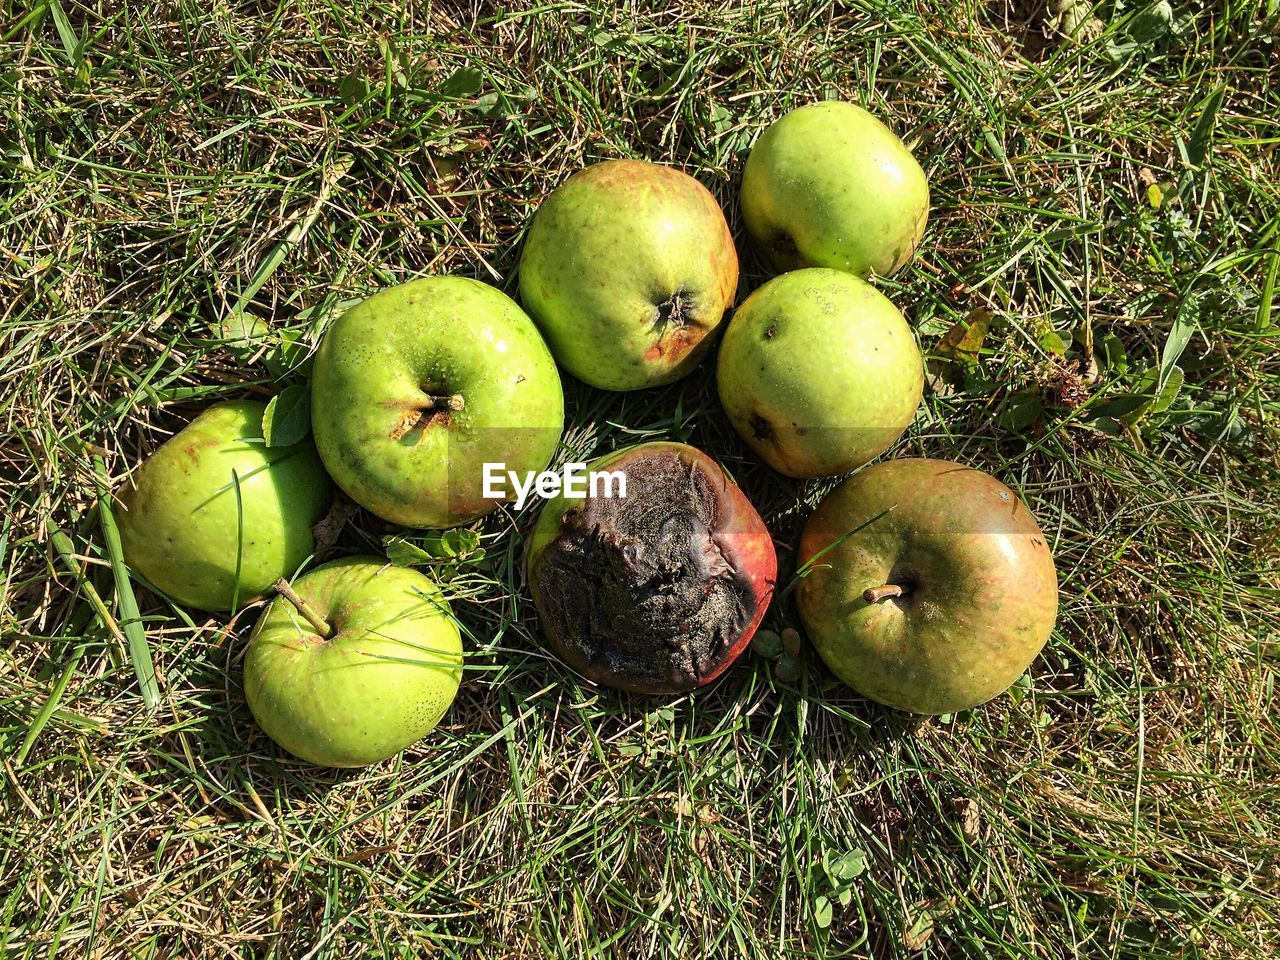 High Angle View Of Granny Smith Apples On Grass